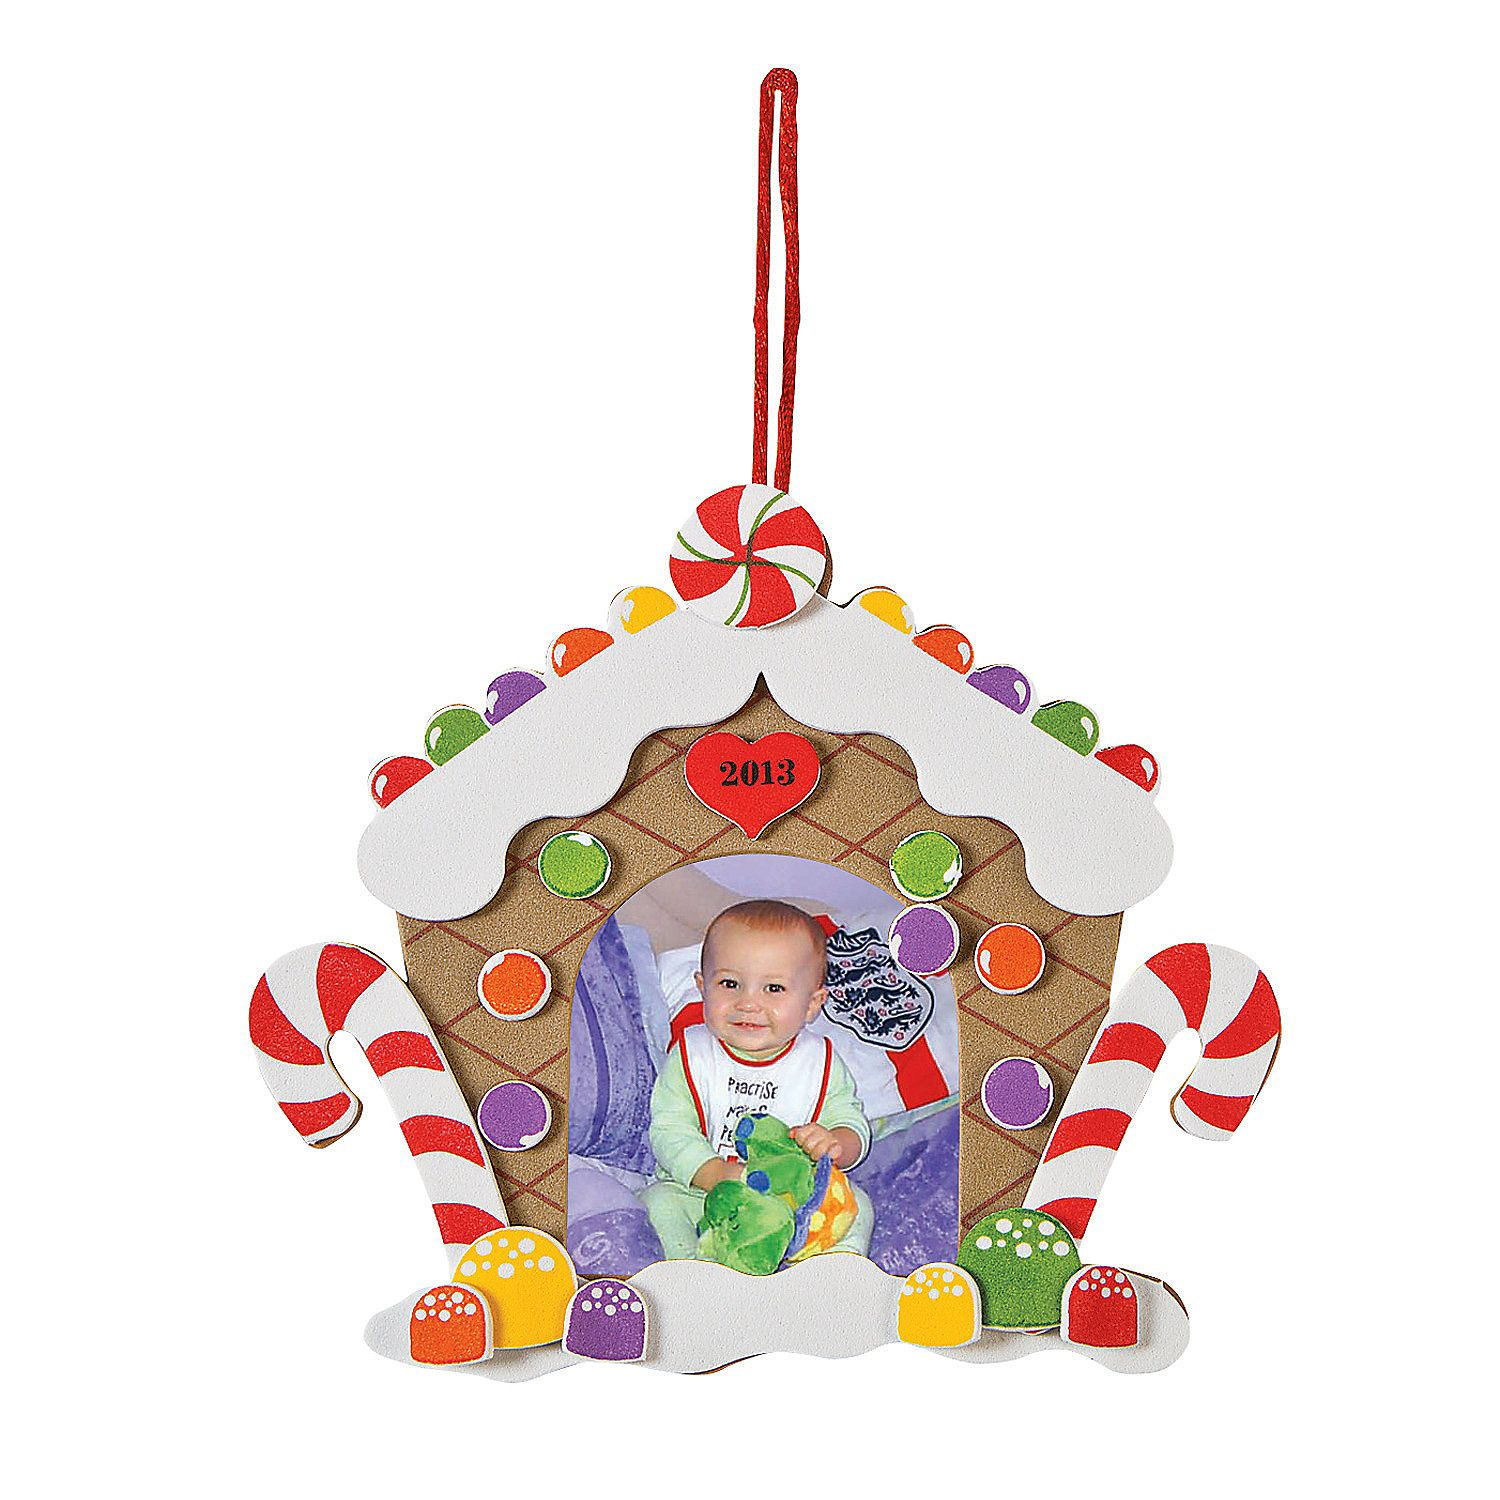 2013 Gingerbread House Picture Frame Christmas Ornament Craft Kit